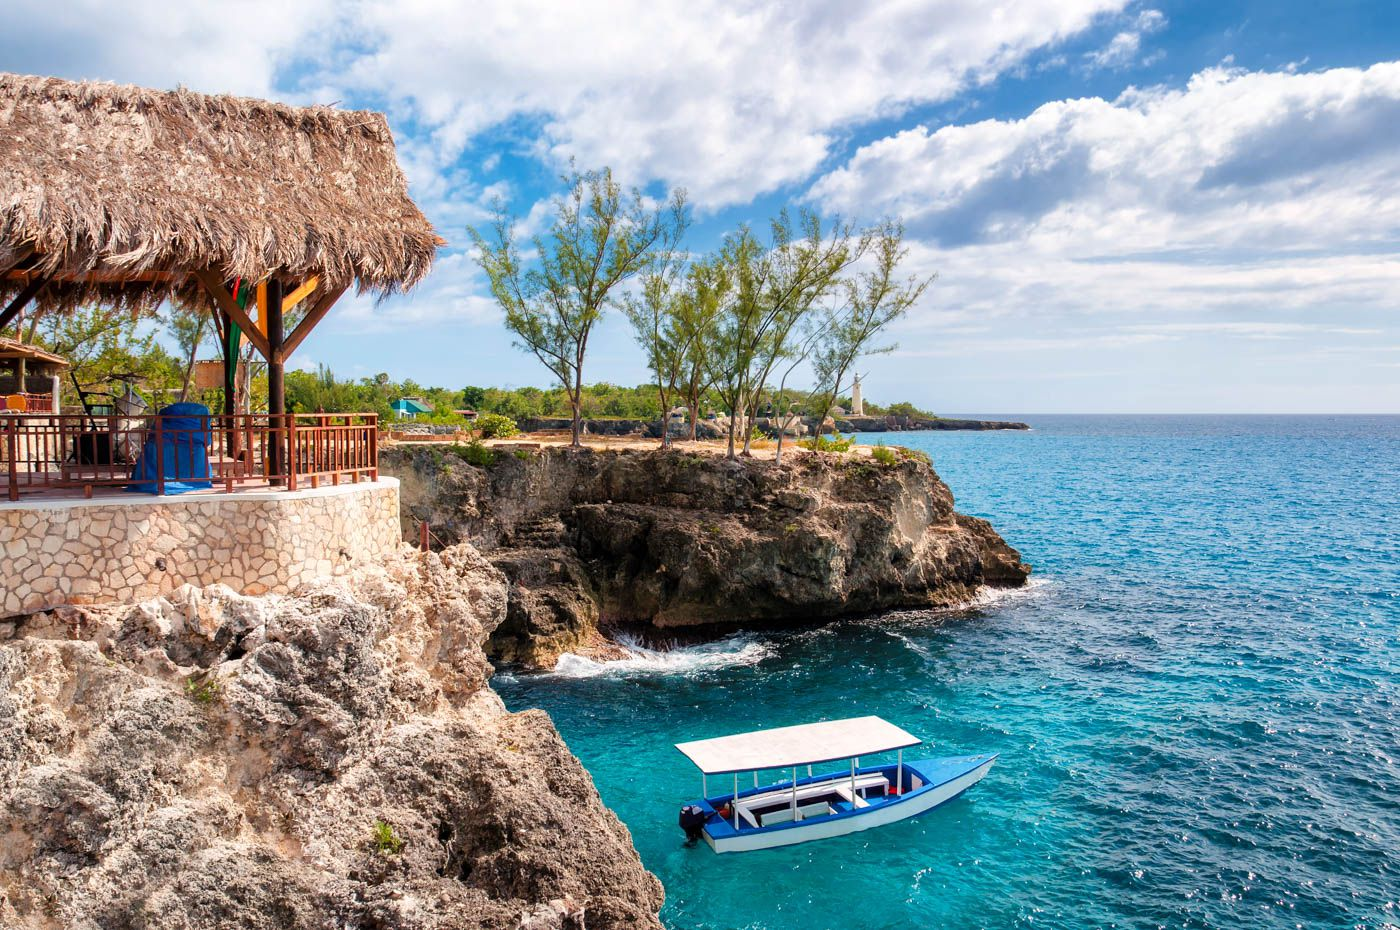 Negril Travel Costs & Prices - Beaches, Appleton Rum ...